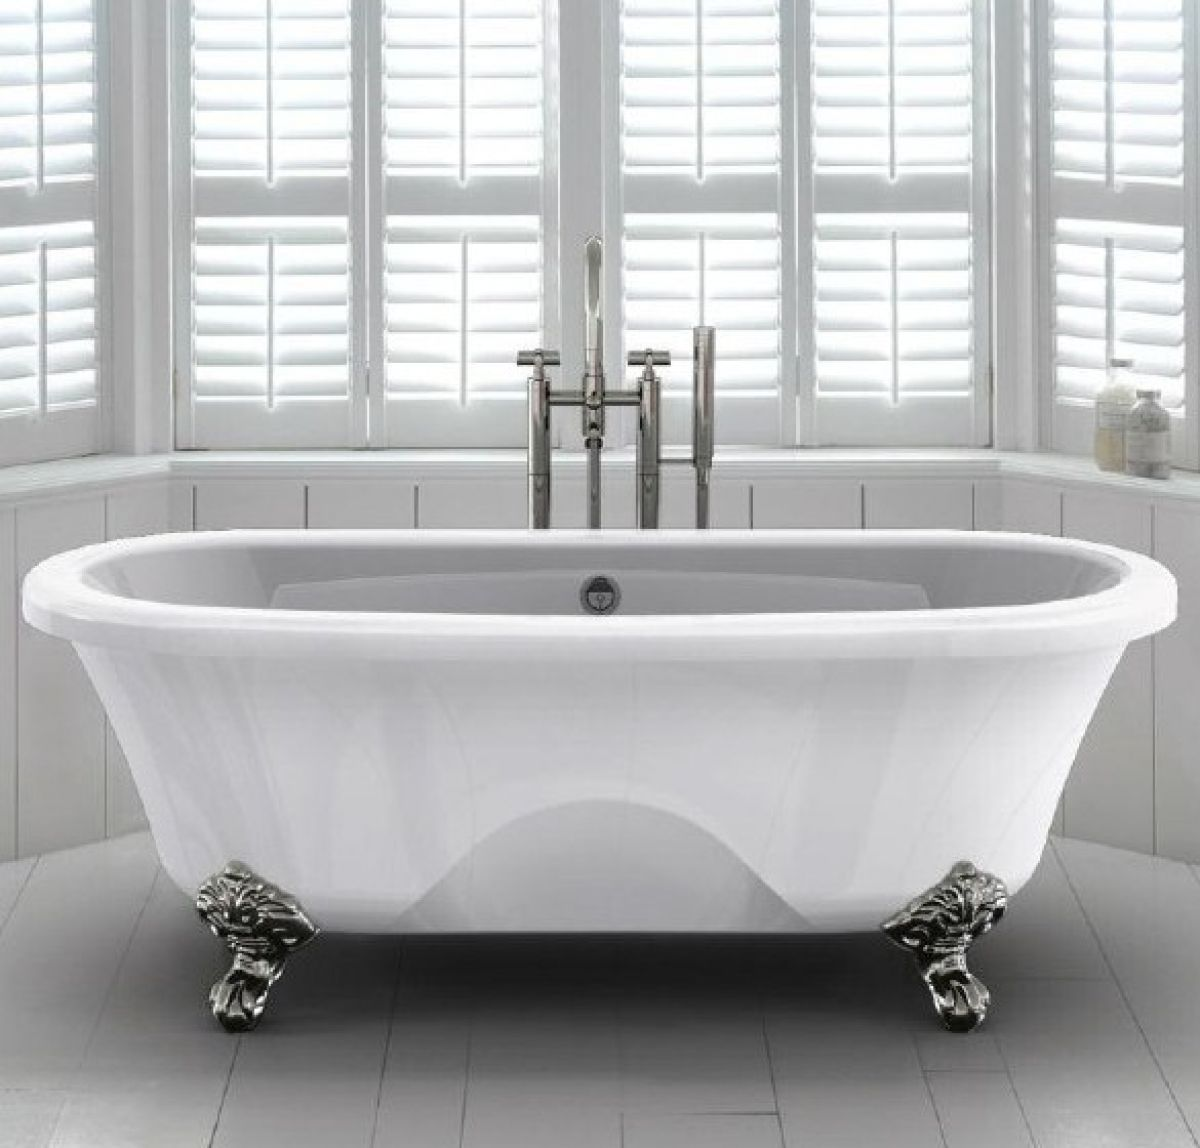 pictures of bathroom tile designs silverdale bexley traditional freestanding bath uk bathrooms 23979